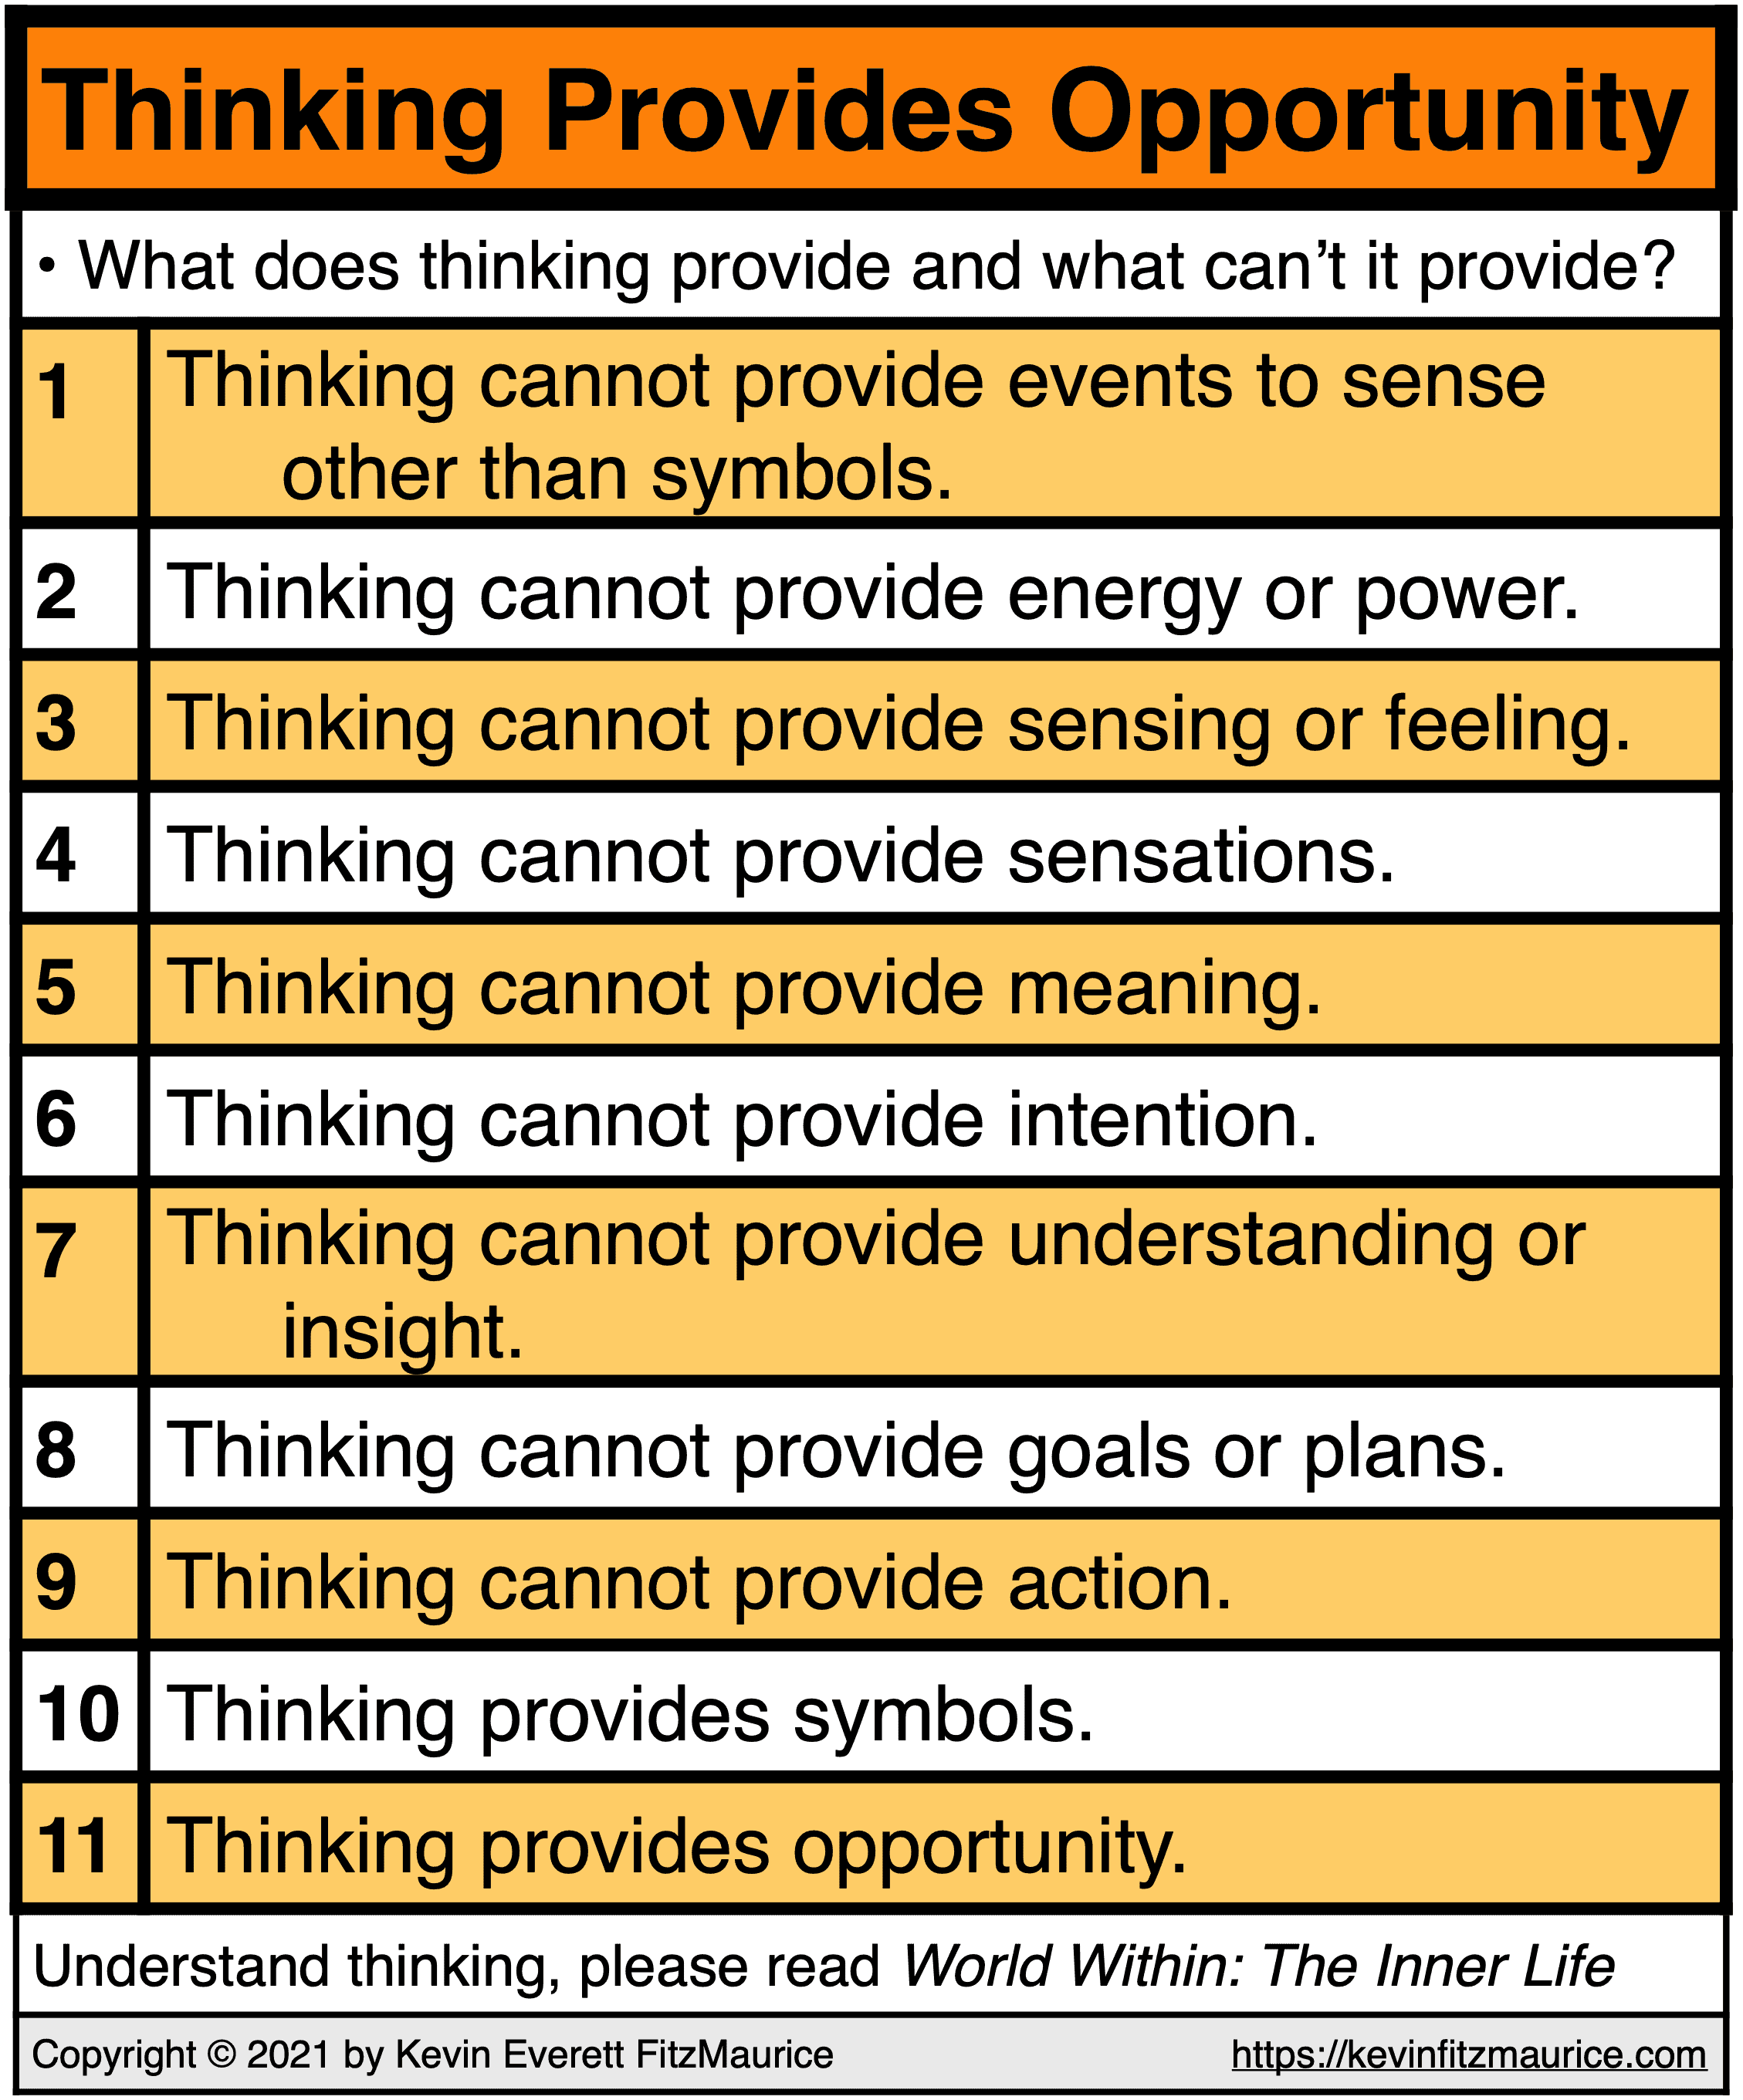 Thinking Can only Provide Symbols & Opportunity